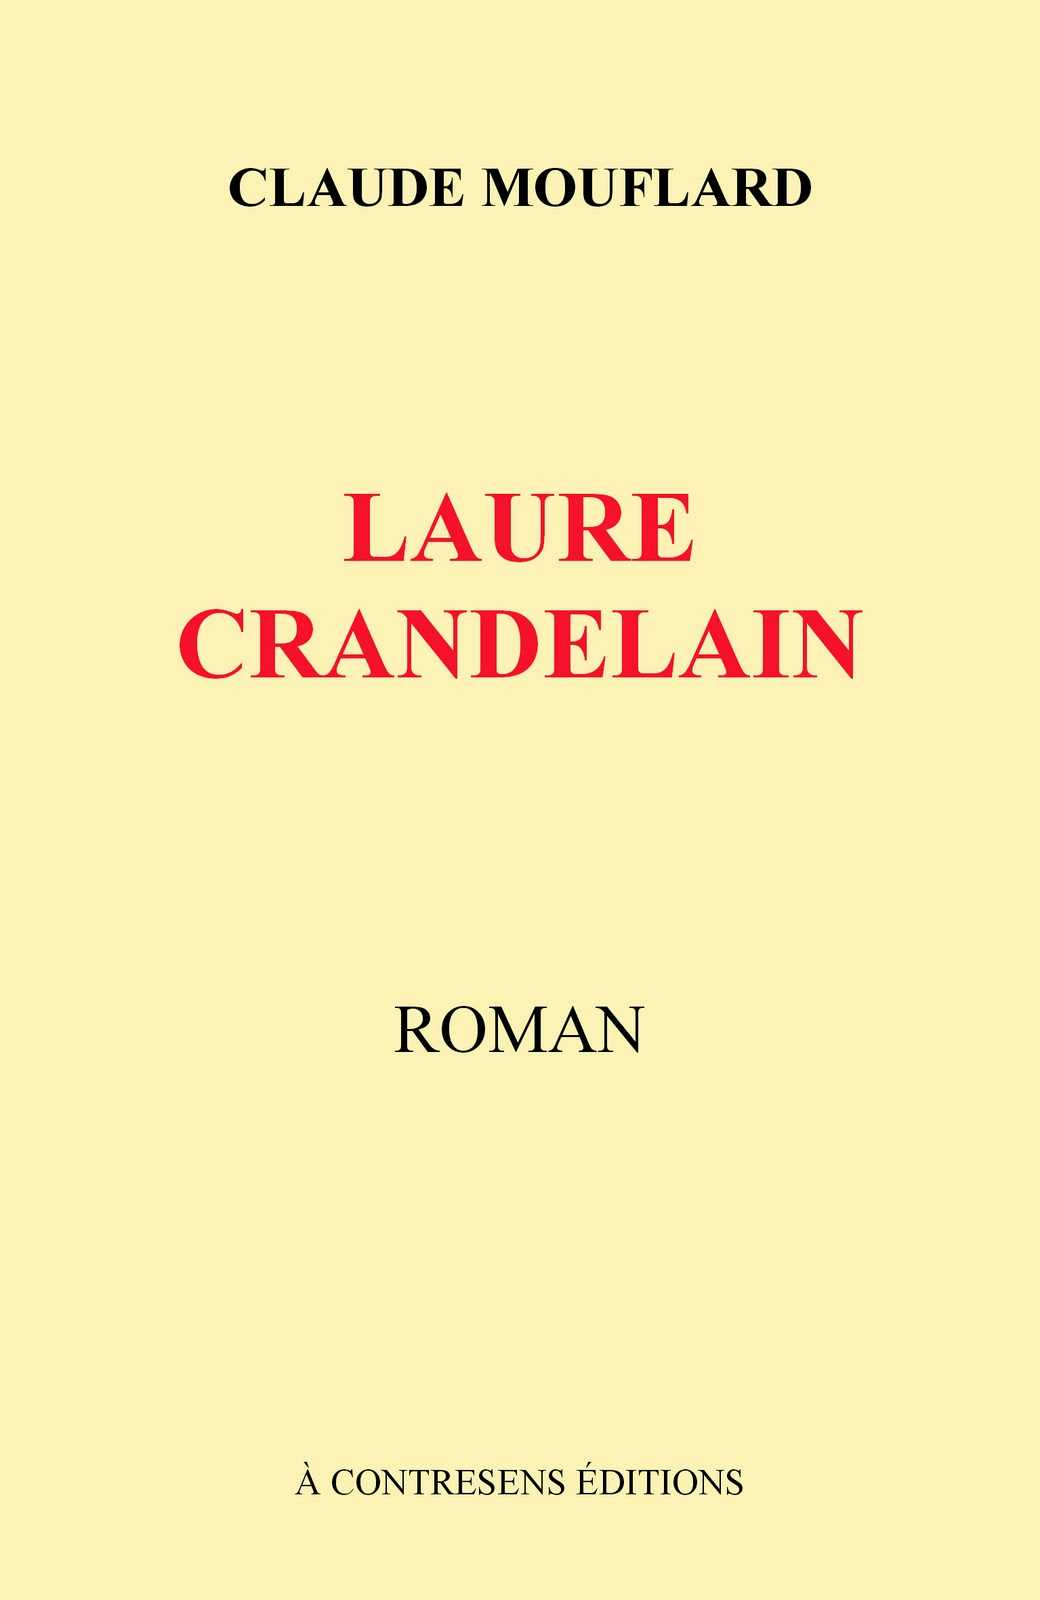 Laure Crandelain